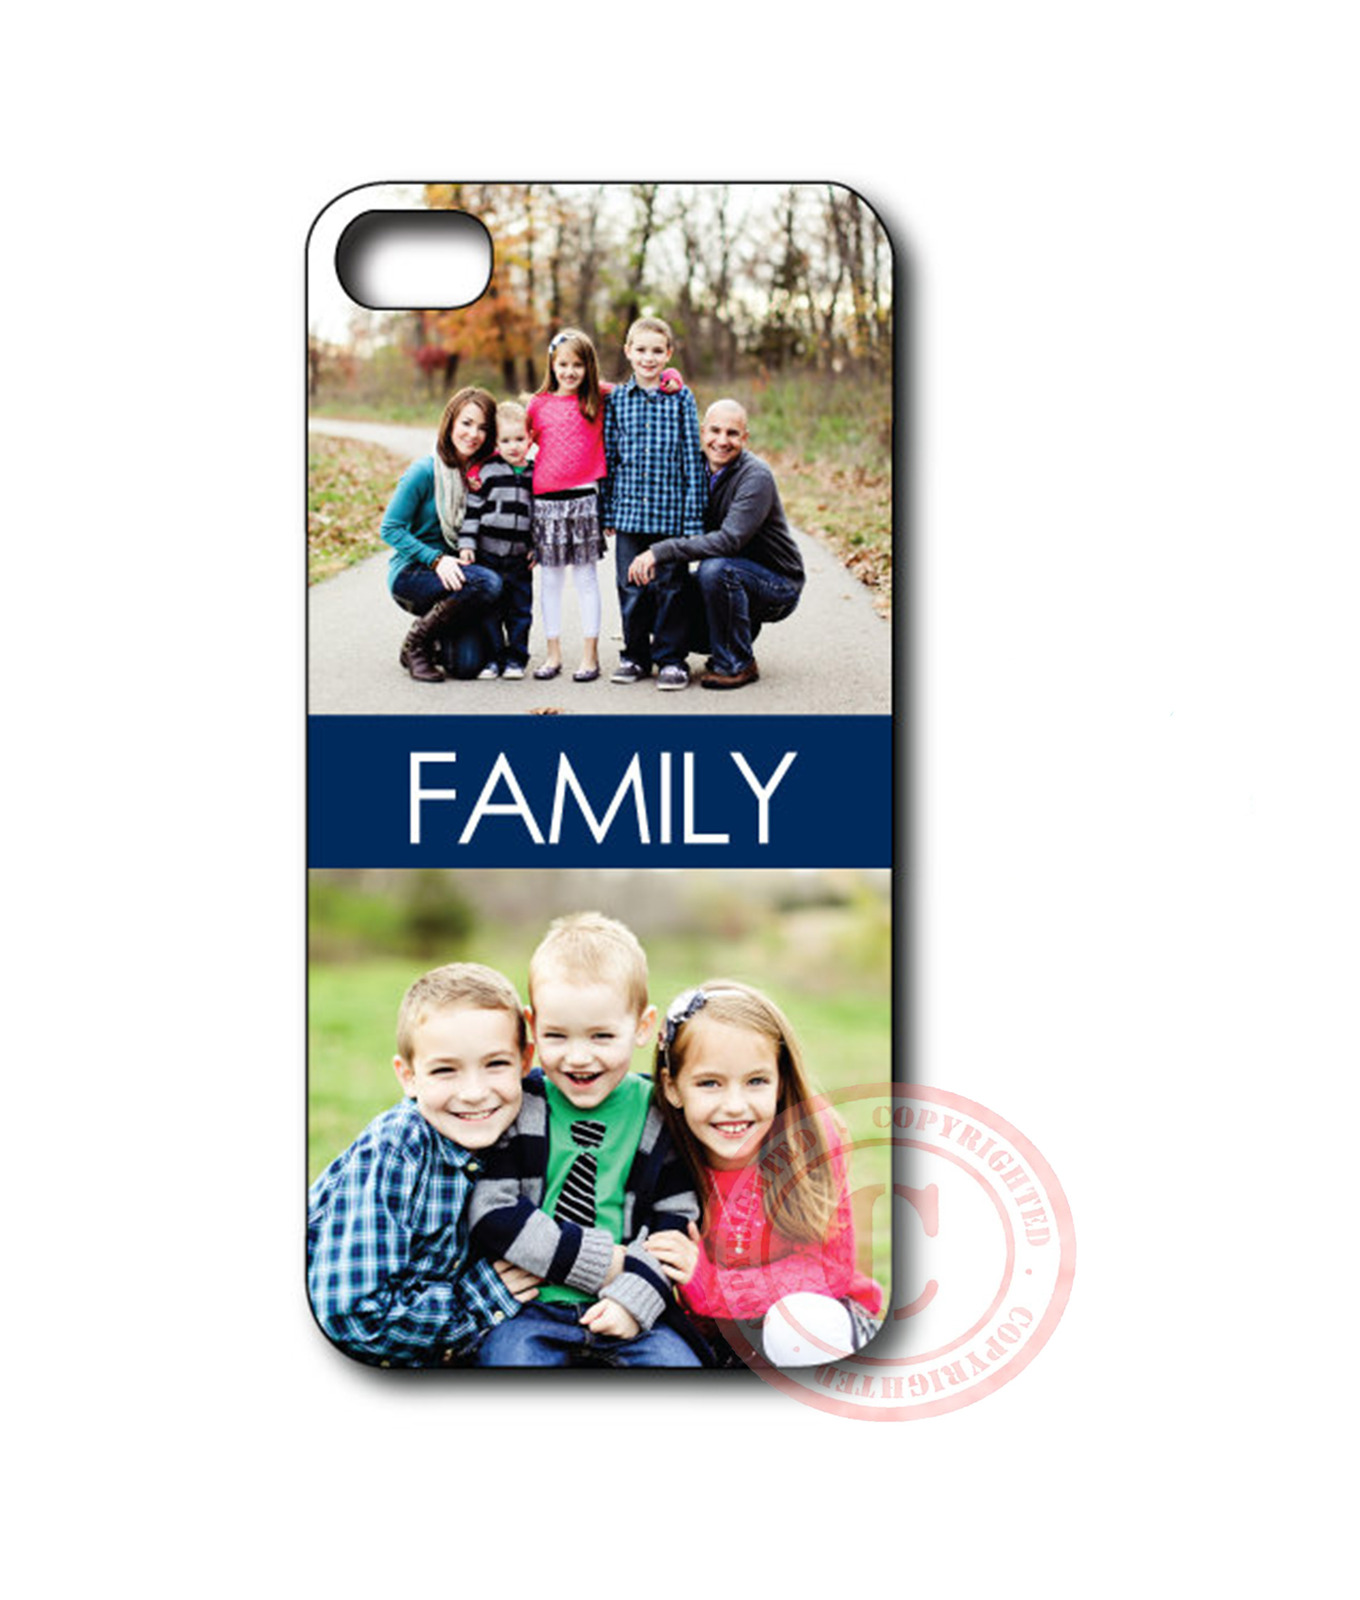 Custom Your Own Image Family Gift iPhone Case - Rubber Silicone iPhone 5 Case, used for sale  USA